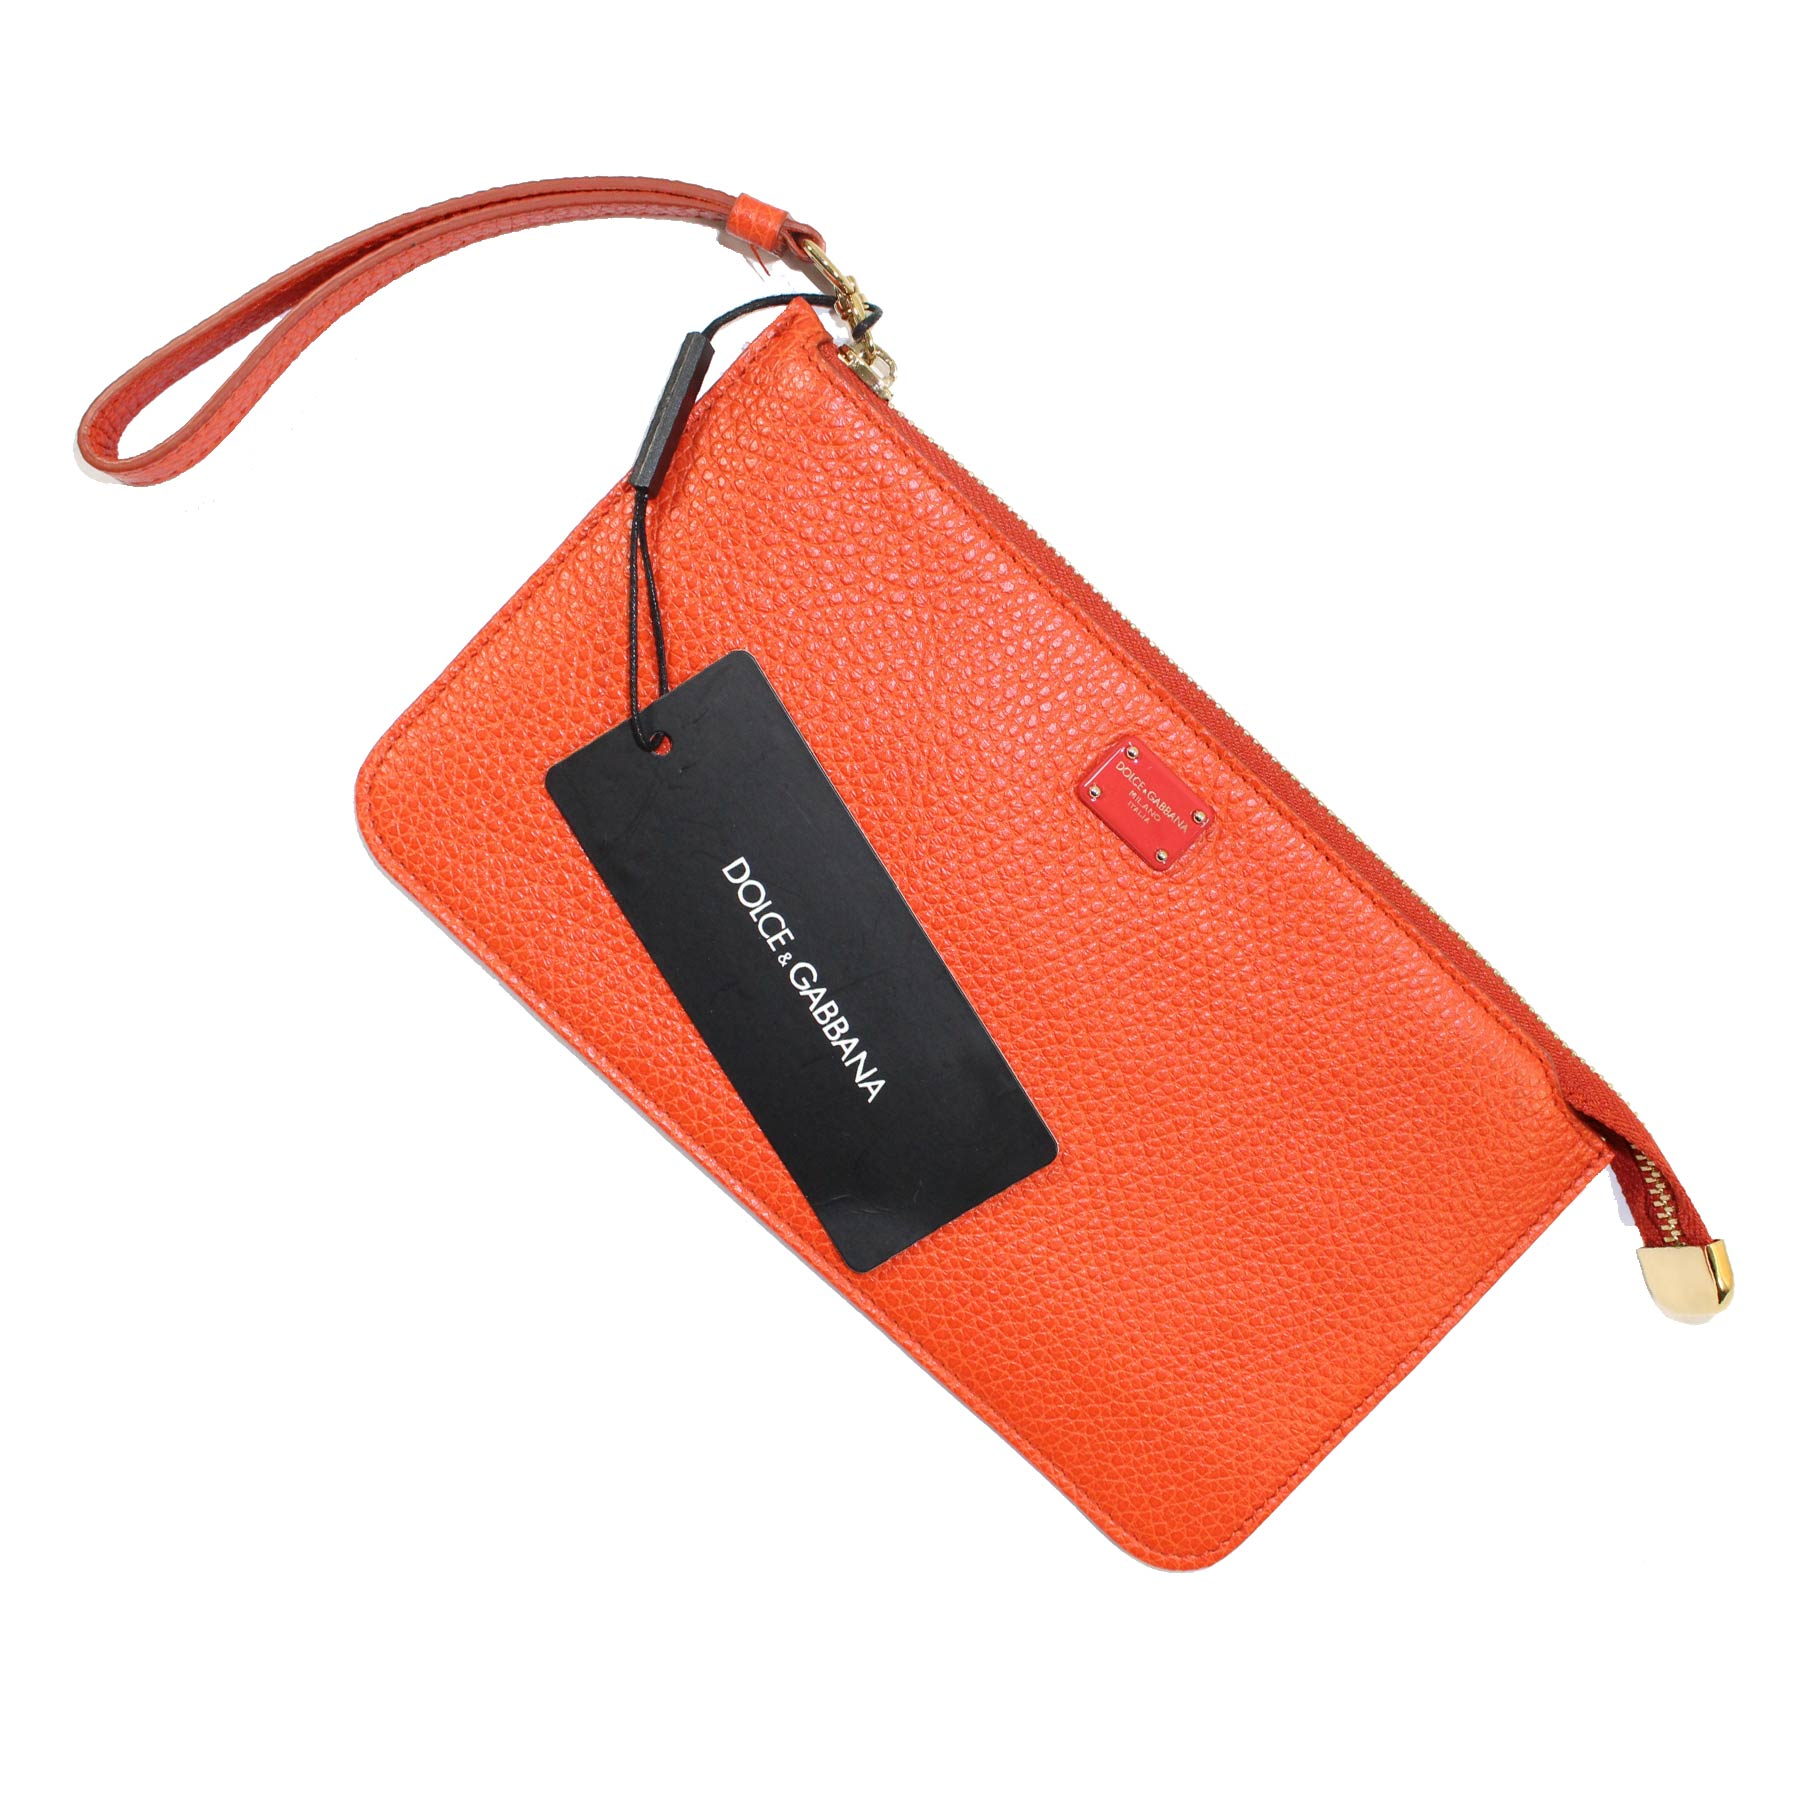 Dolce & Gabbana Clutch Orange Leather Wallet